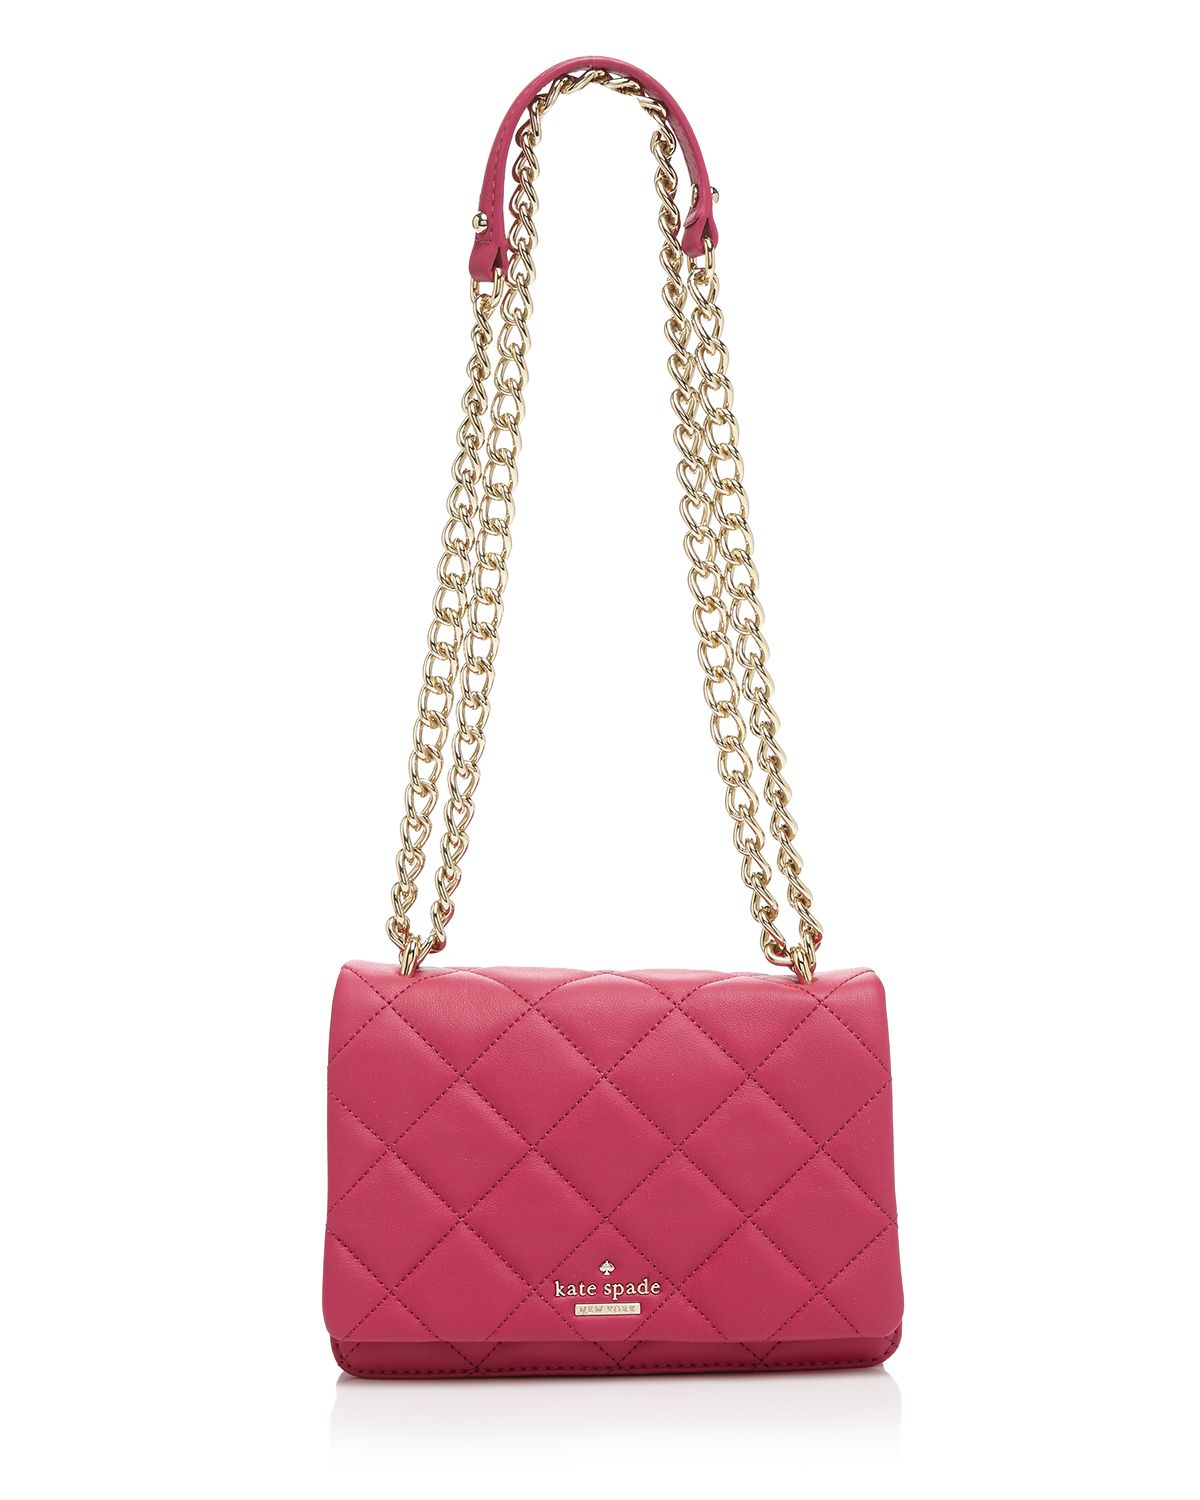 Kate spade new york Crossbody - Bloomingdale's Exclusive Emerson Place ...